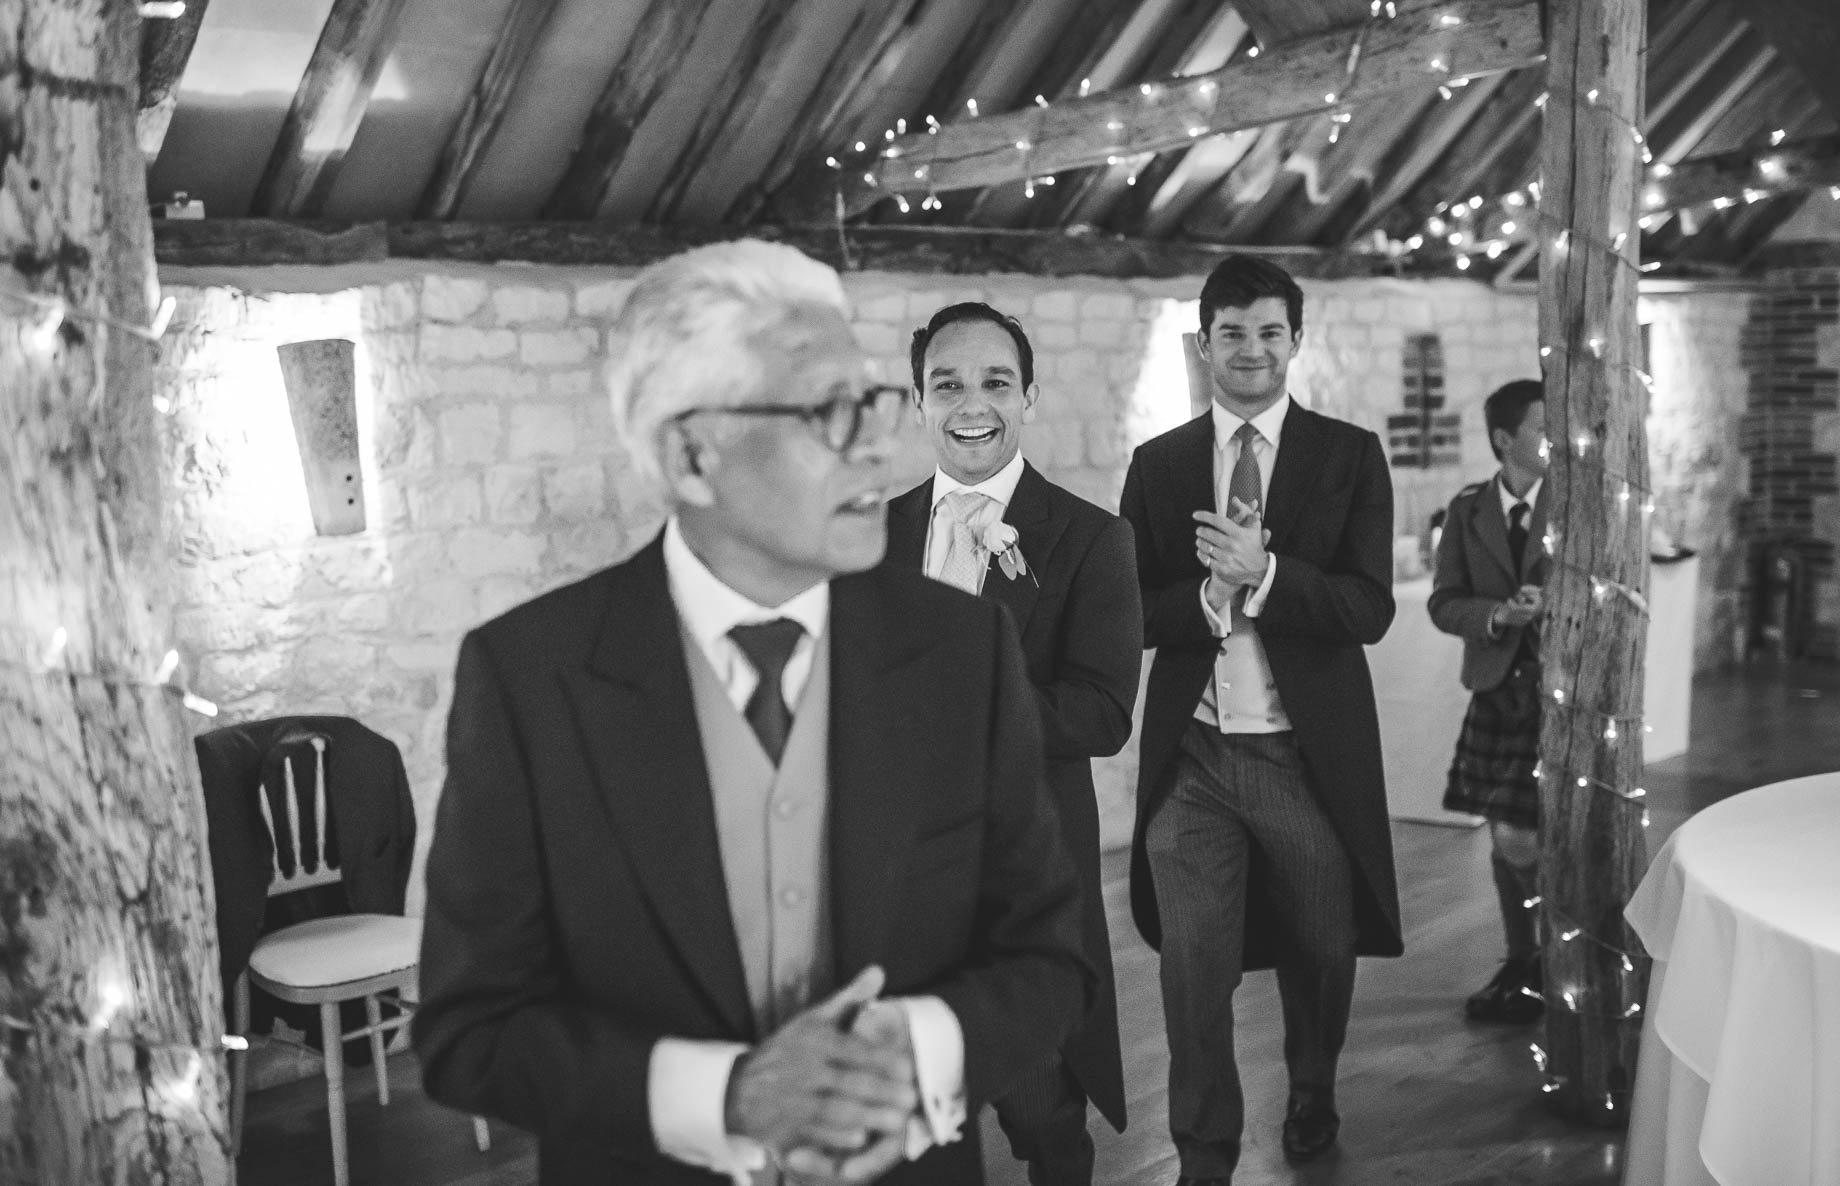 Bury Court Barn Wedding Photography - Caroline and Rob (215 of 219)